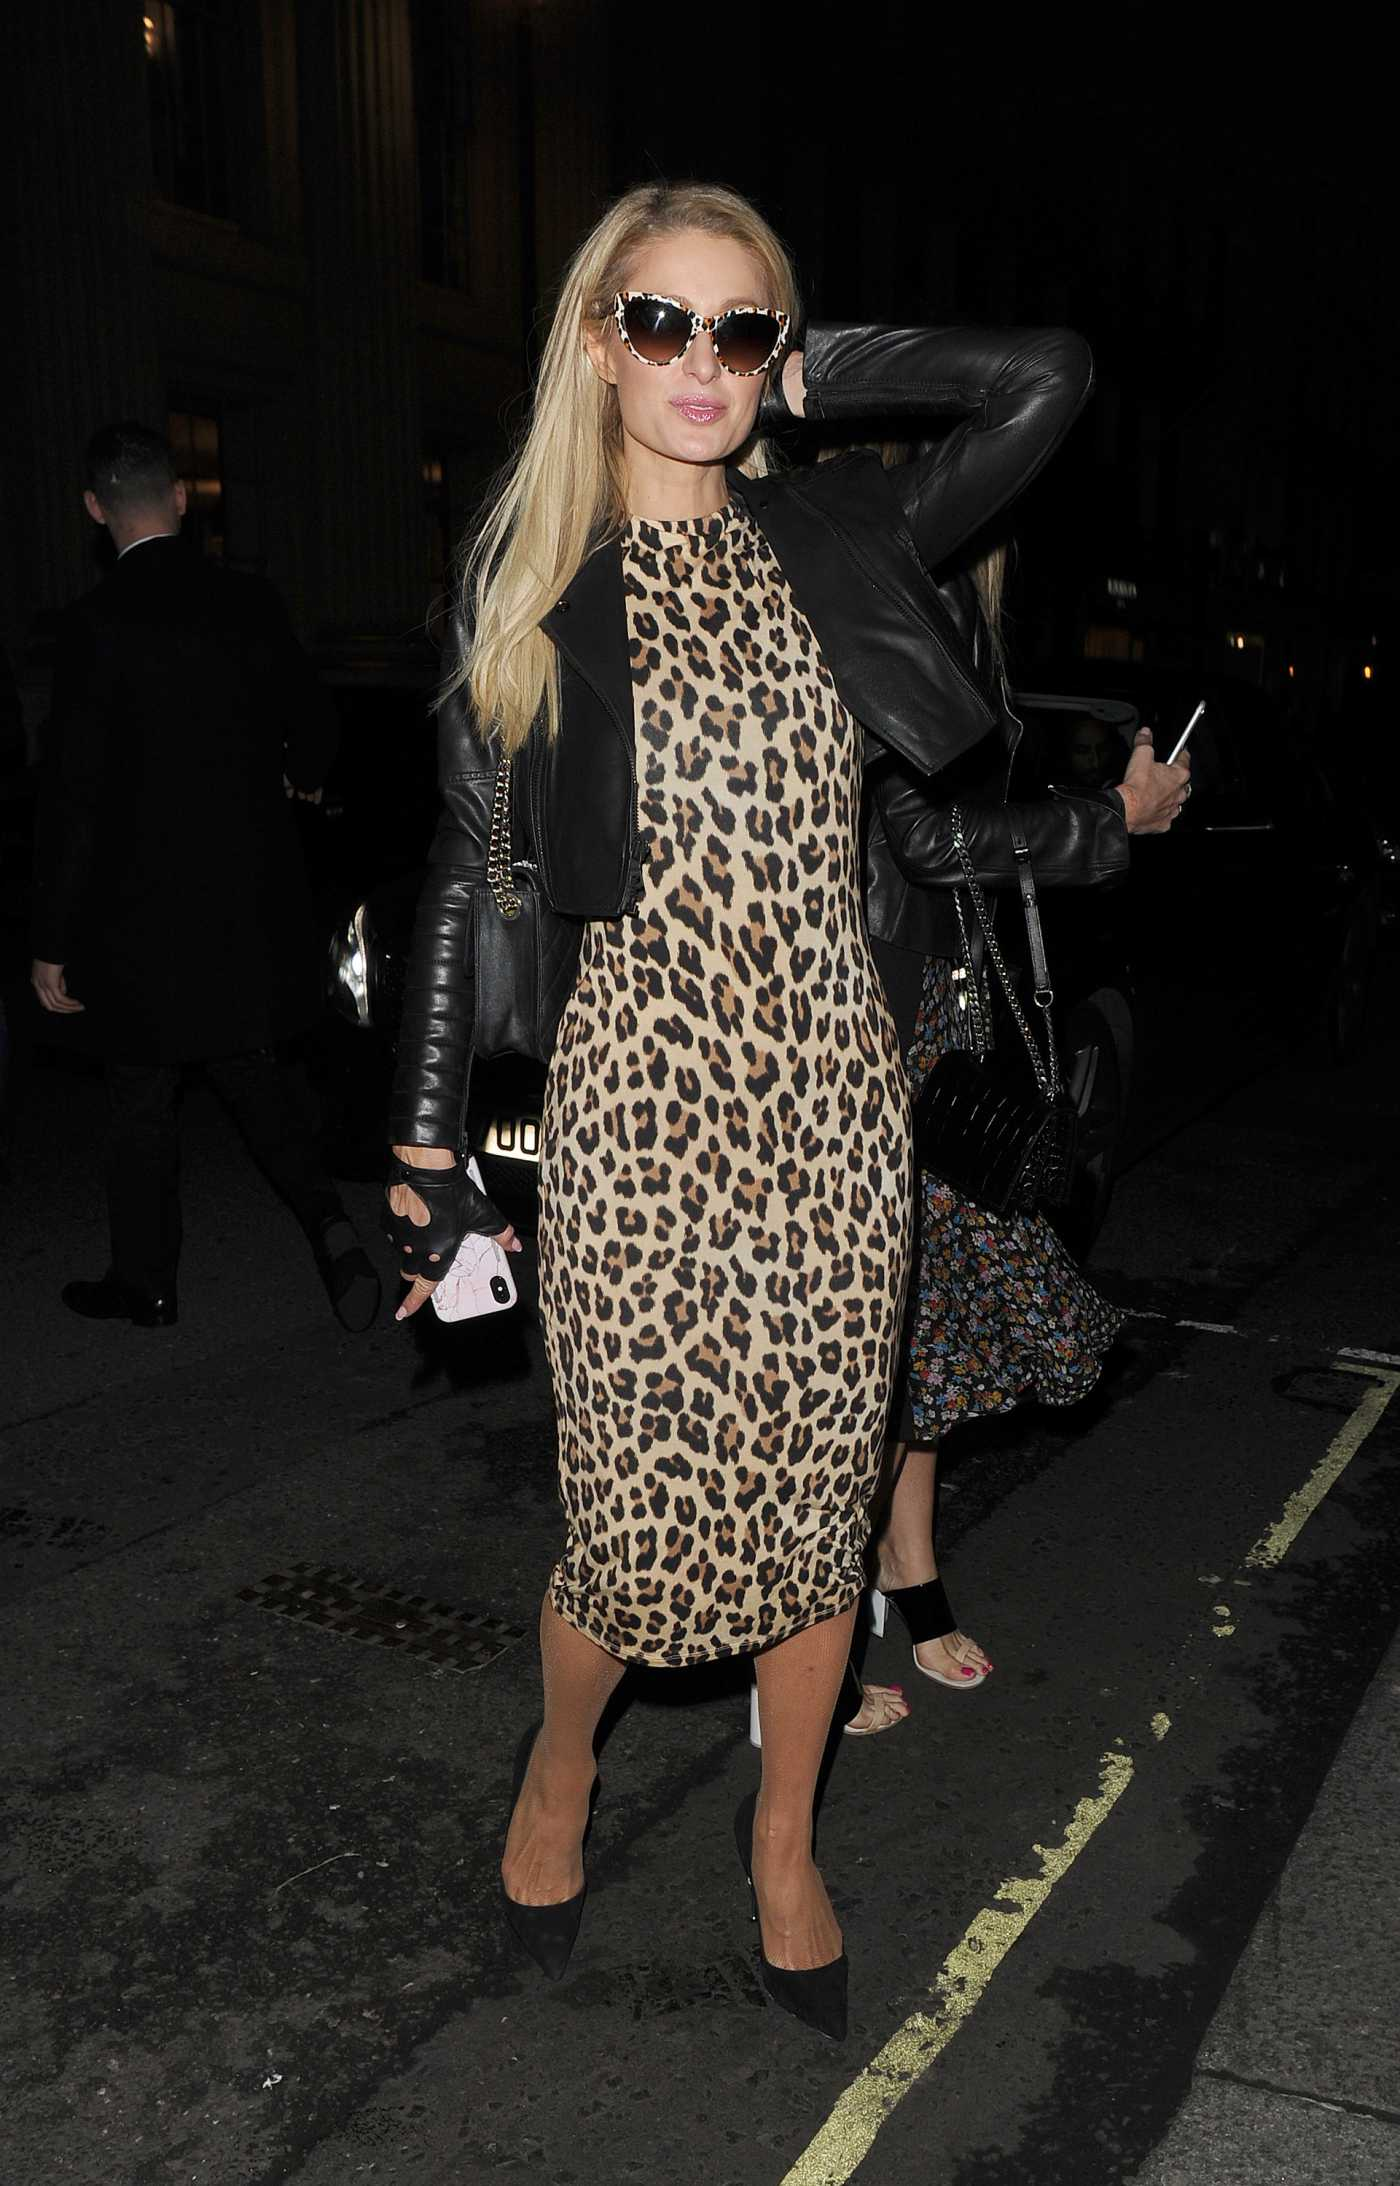 Paris Hilton in a Leopard Print Dress Arrives at Chiltern Firehouse in London 06/04/2019